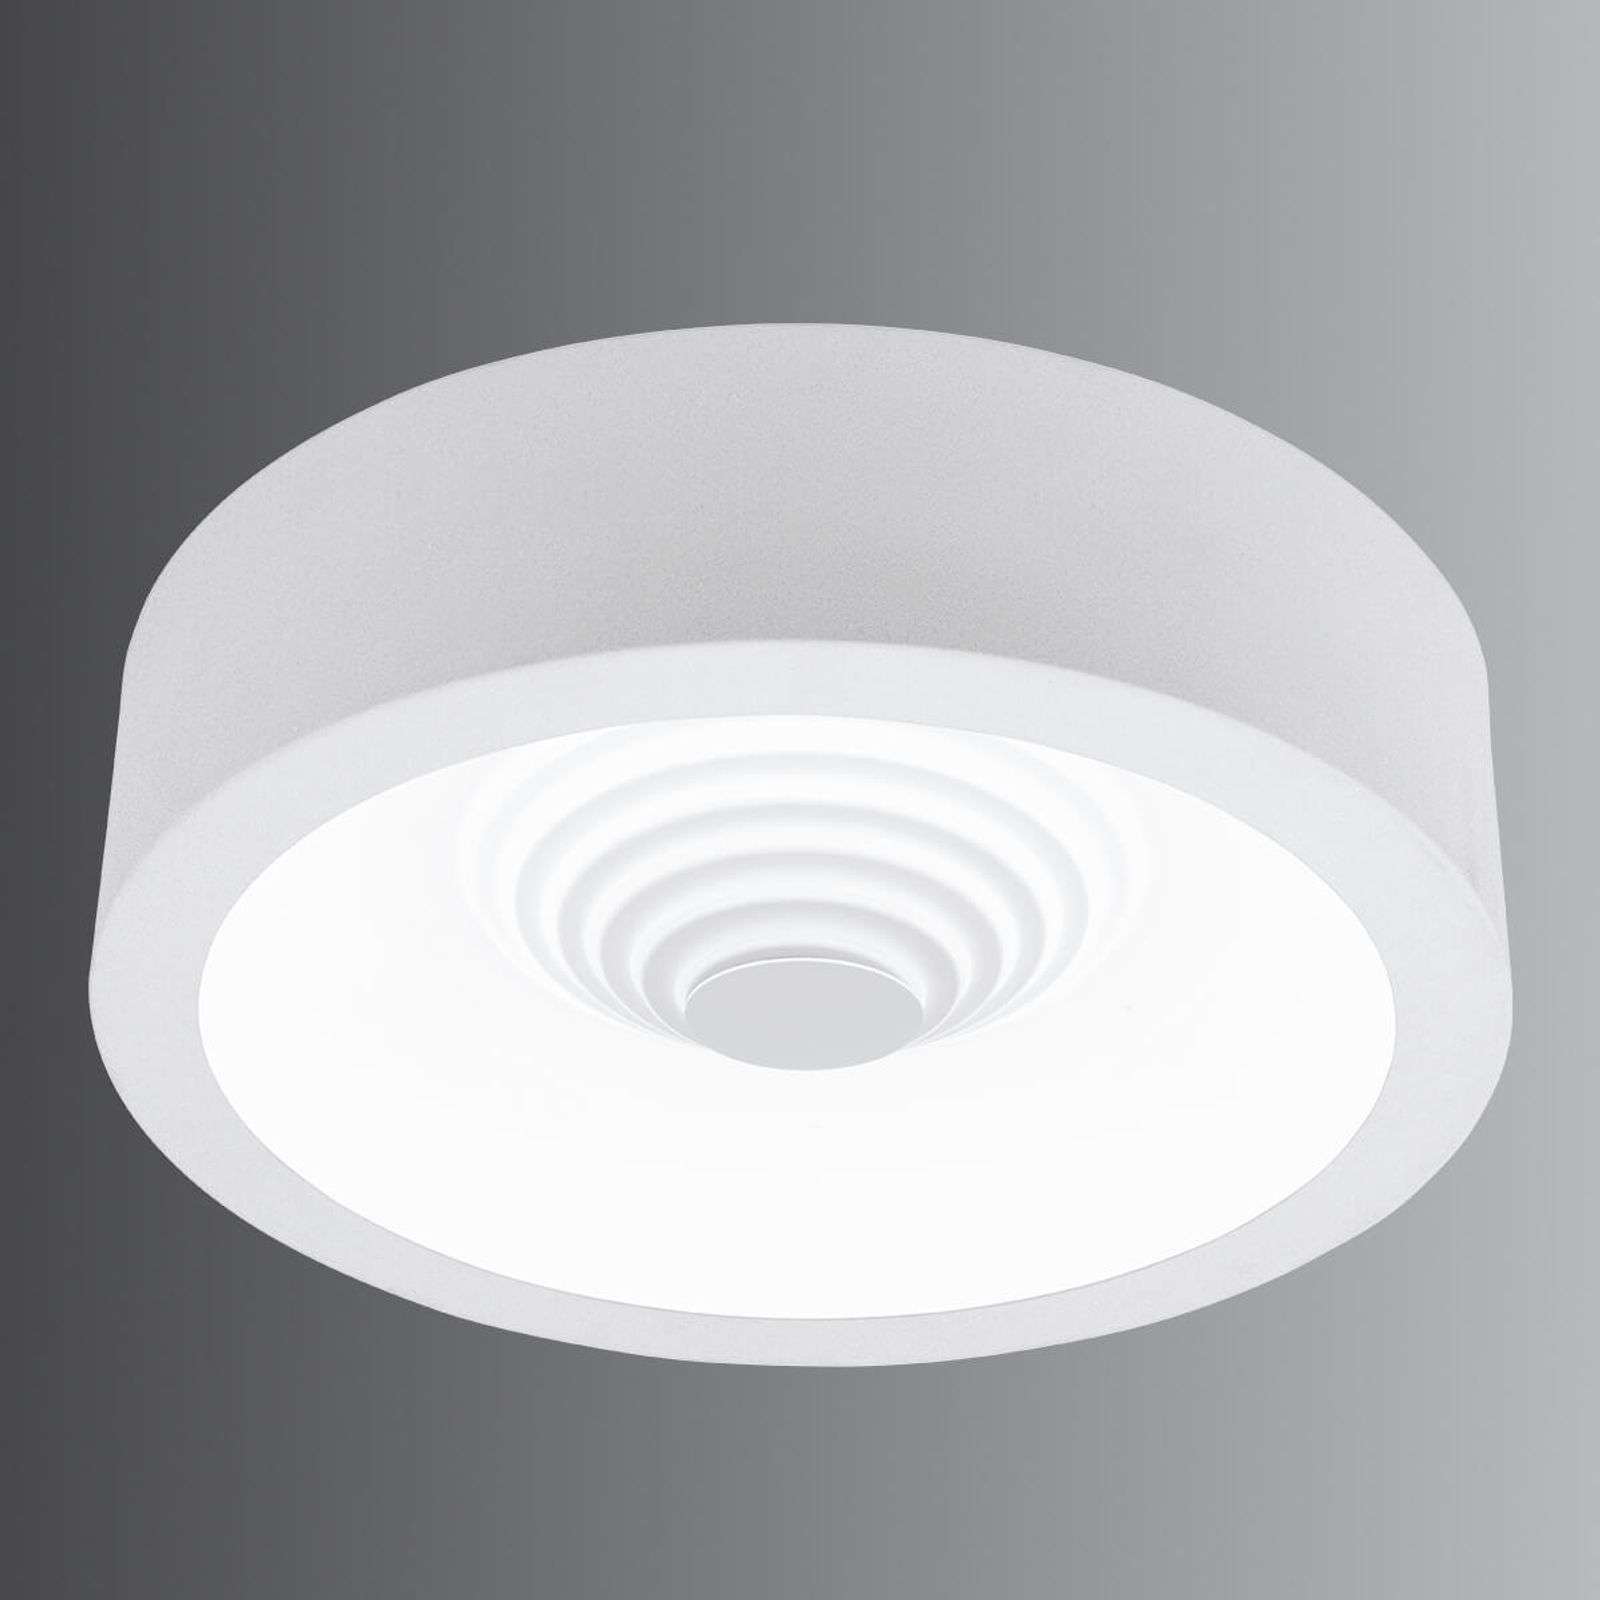 Plafonnier LED rond Leganes, dimmable